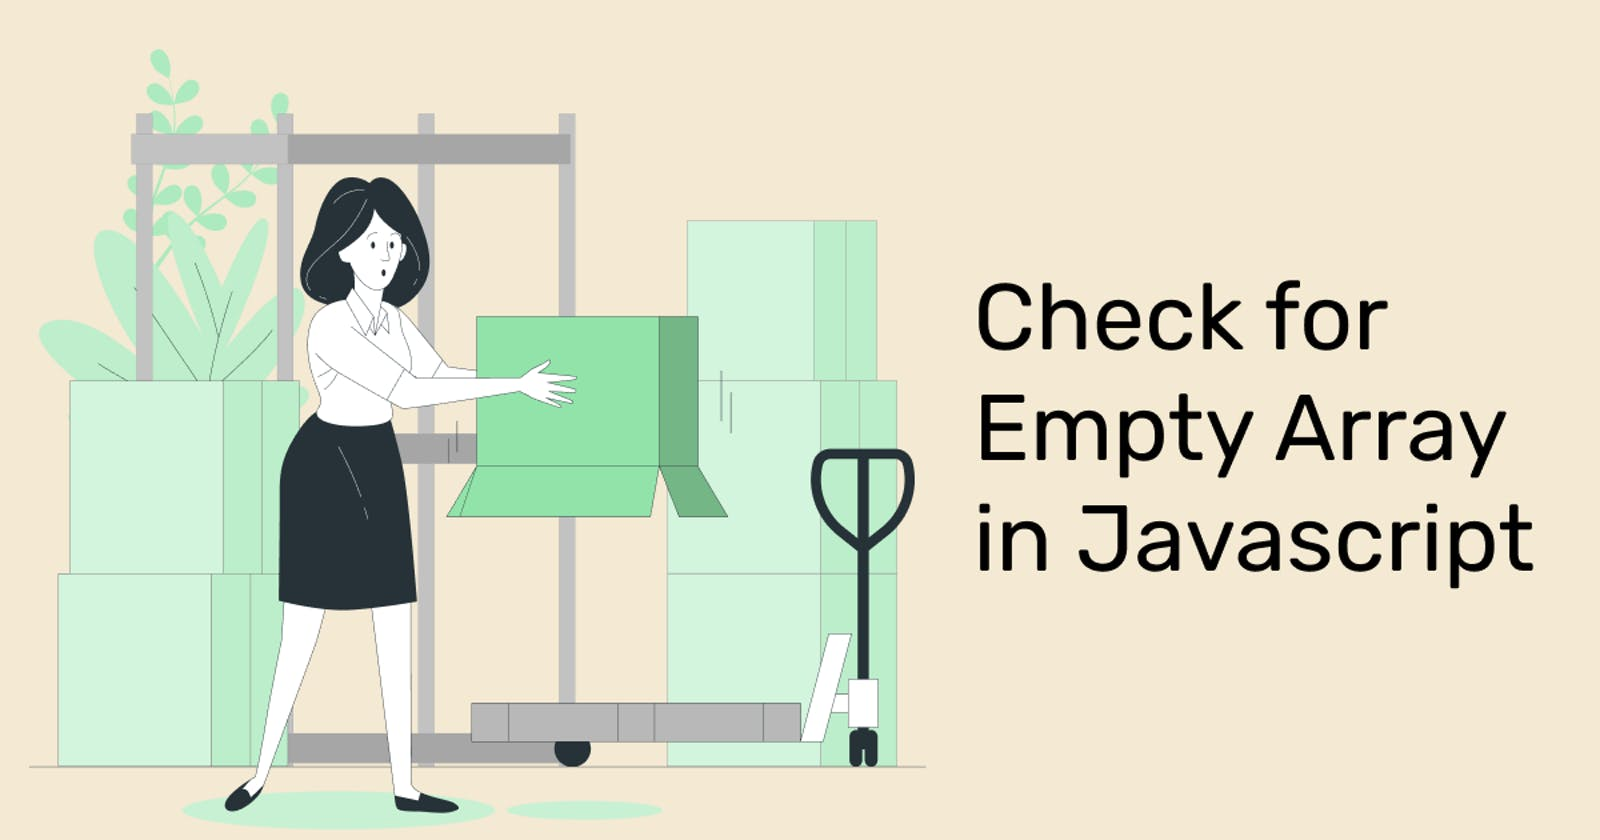 Check for Empty Array in Javascript